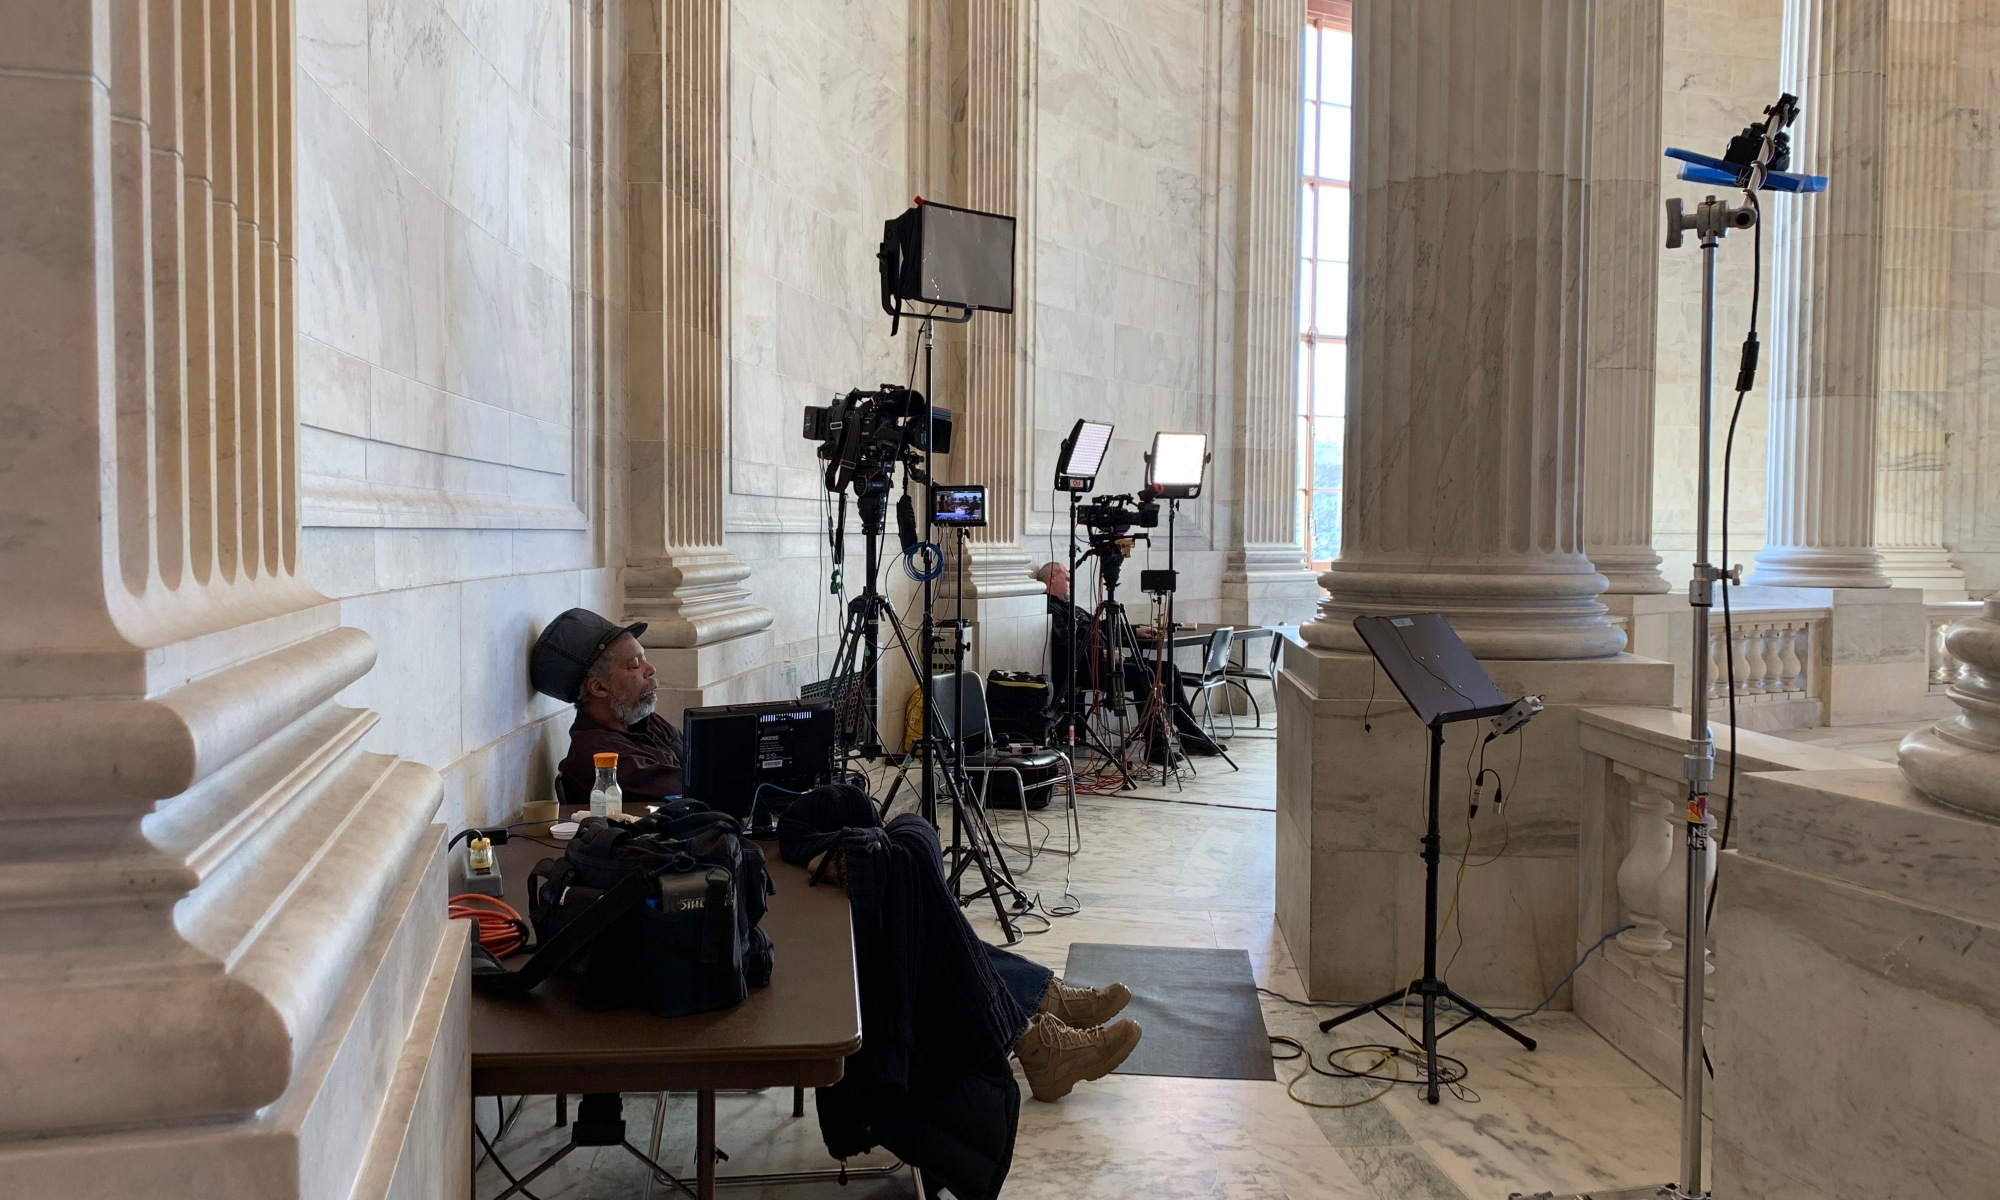 TV Crews set up in the Russell Building, Washington, D.C.